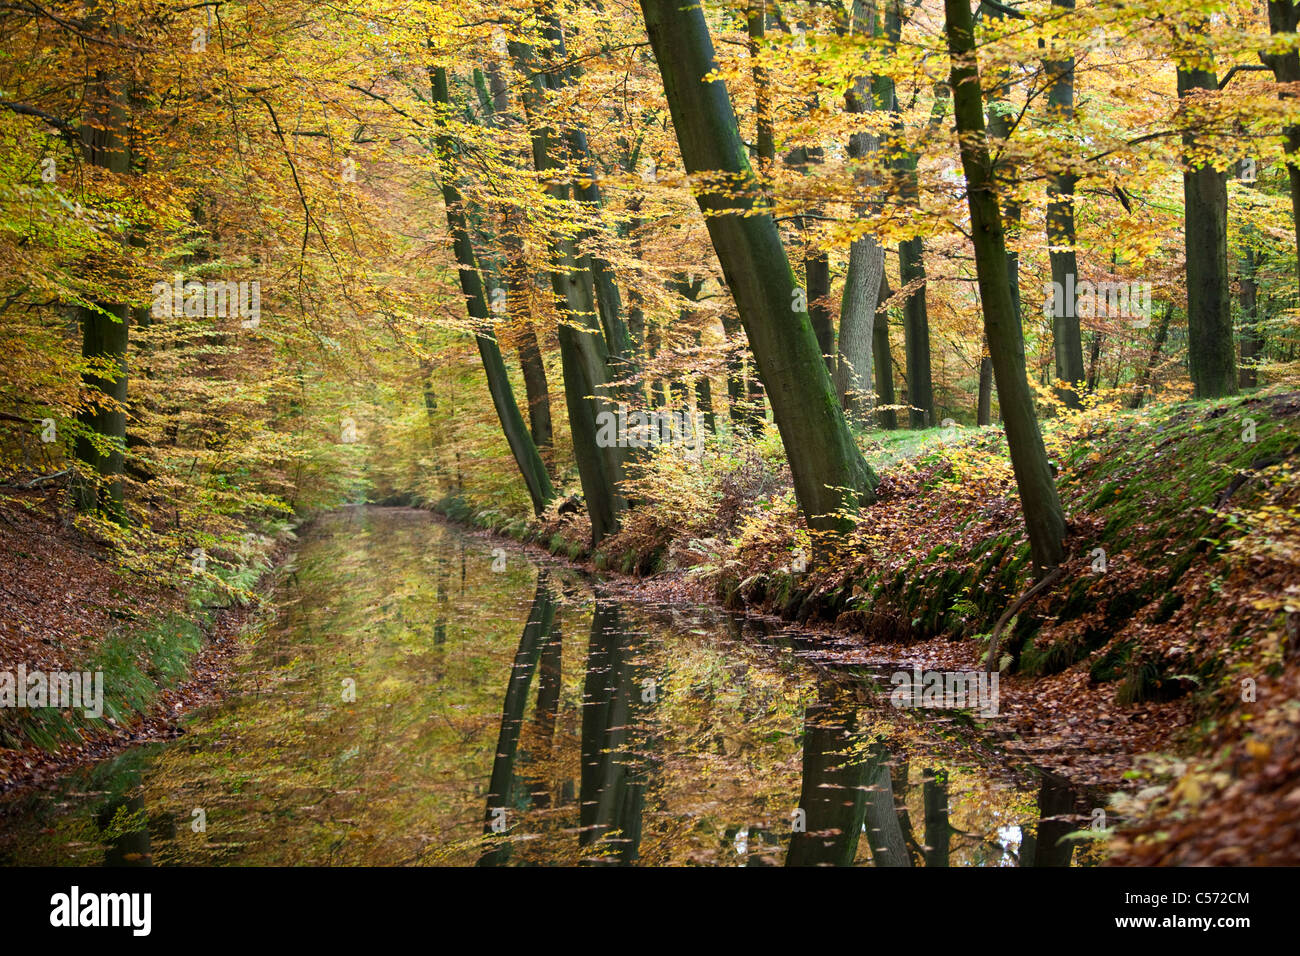 The Netherlands, Delden, Autumn colours. Trees reflecting in stream. - Stock Image